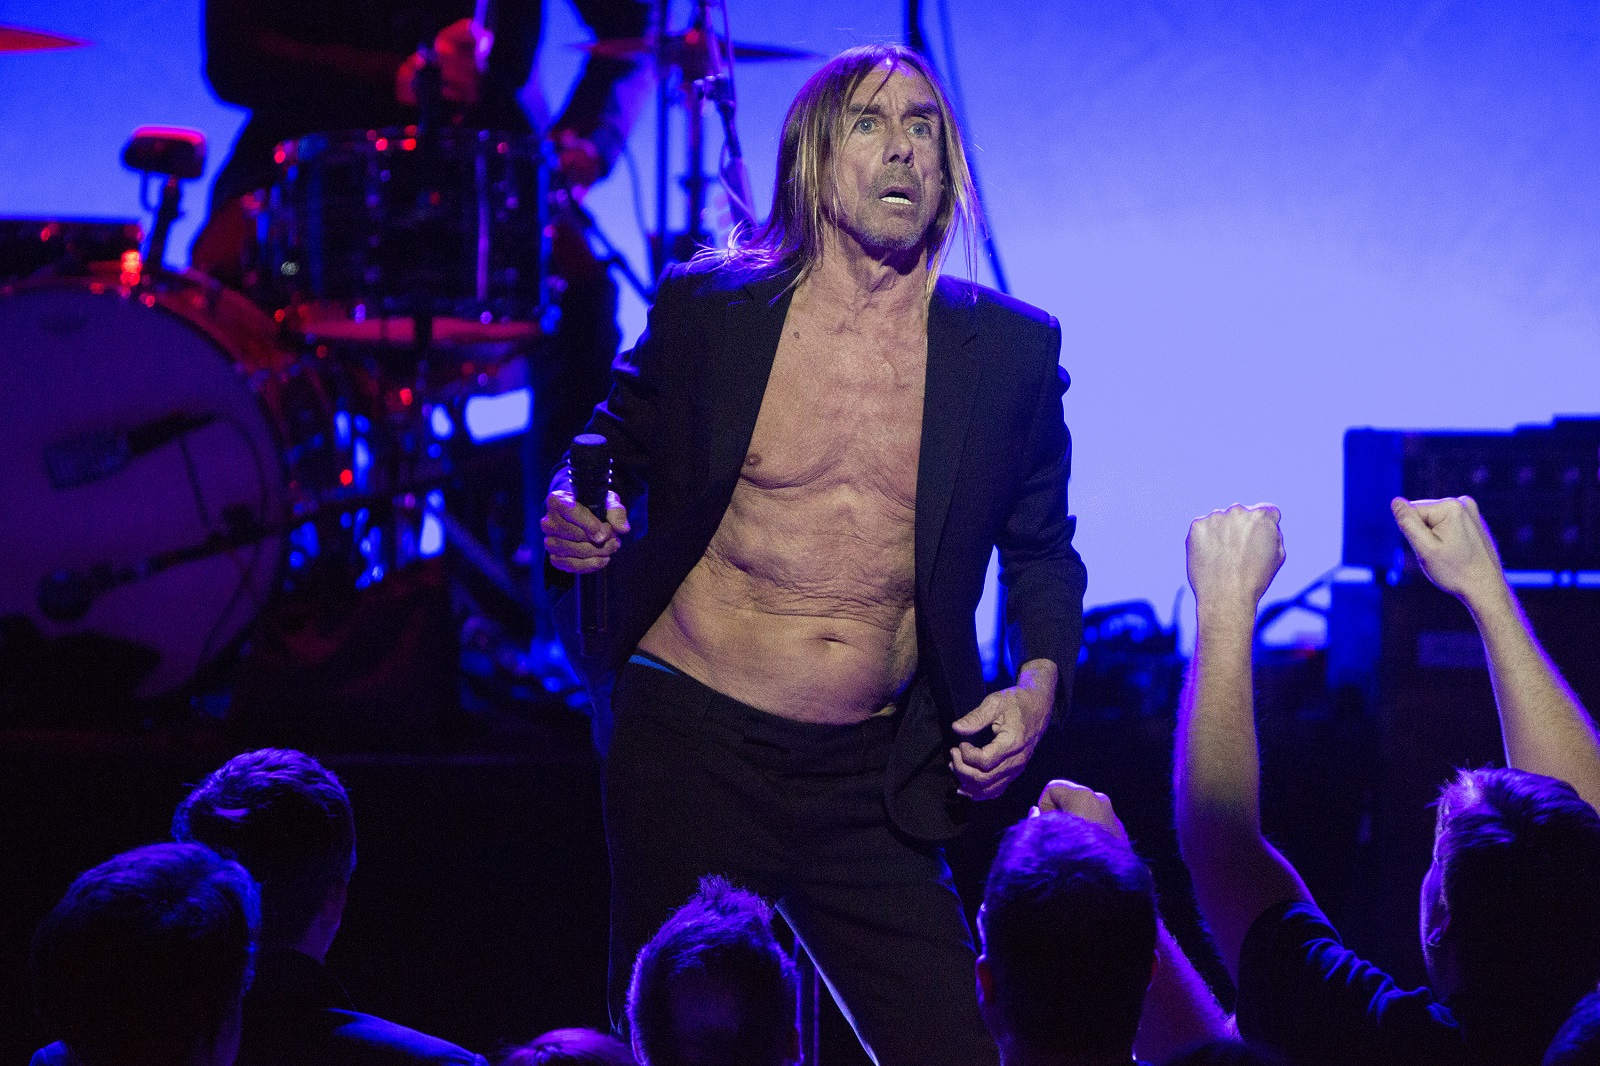 Iggy Pop performs at the Chicago Theatre in 2016. (Erin Hooley/Chicago Tribune/TNS)